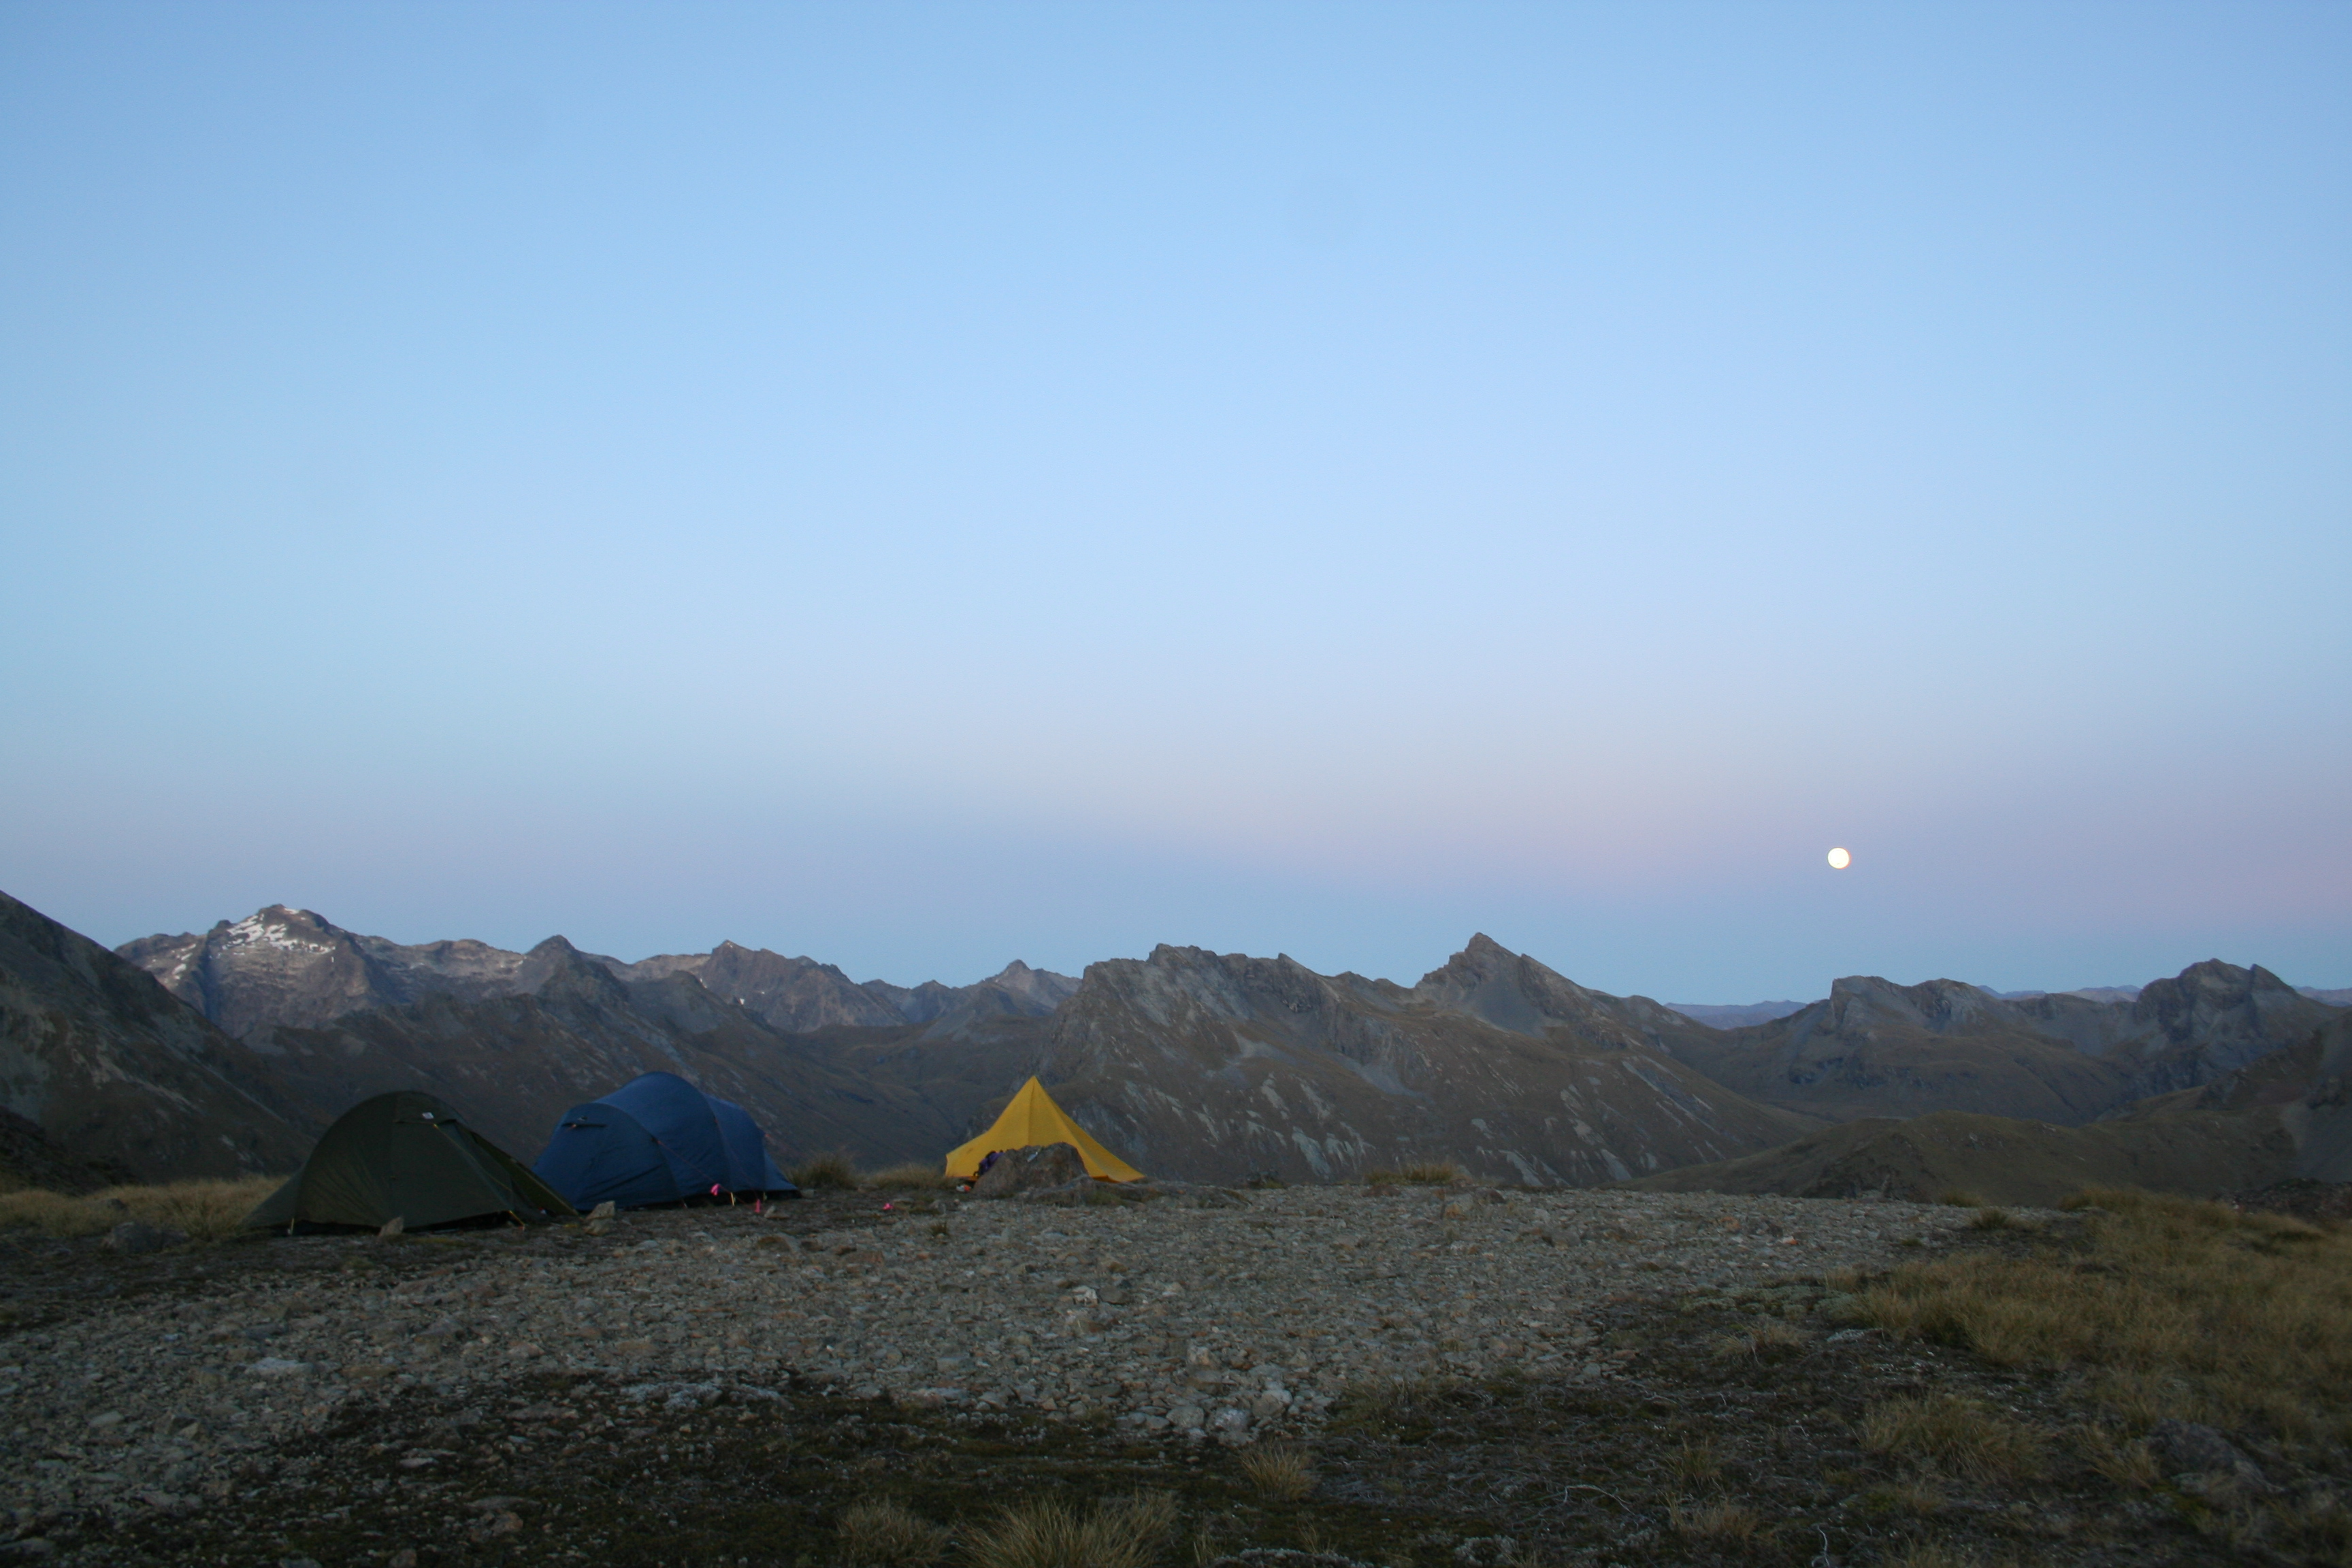 The moon rising over a mountain range with three tents in the foreground pitched on rocky ground